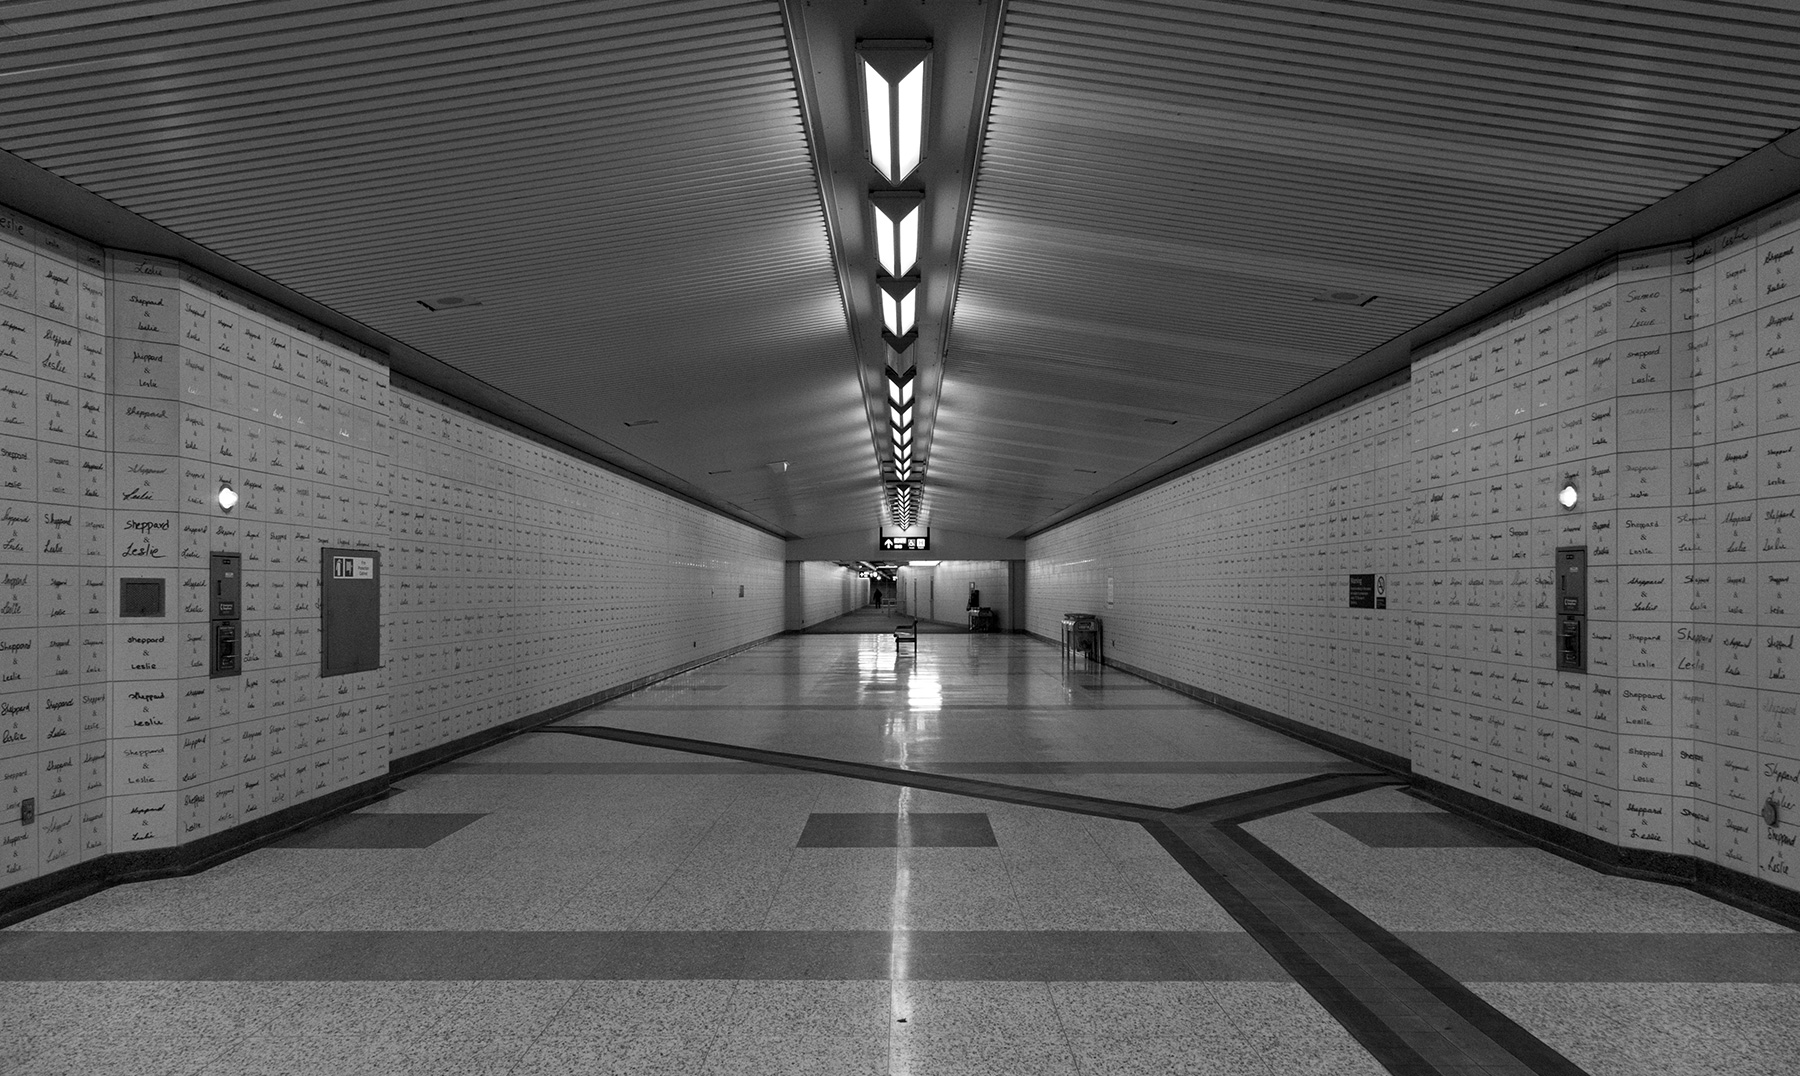 20160310. The cavernous Leslie station on the underused Sheppard